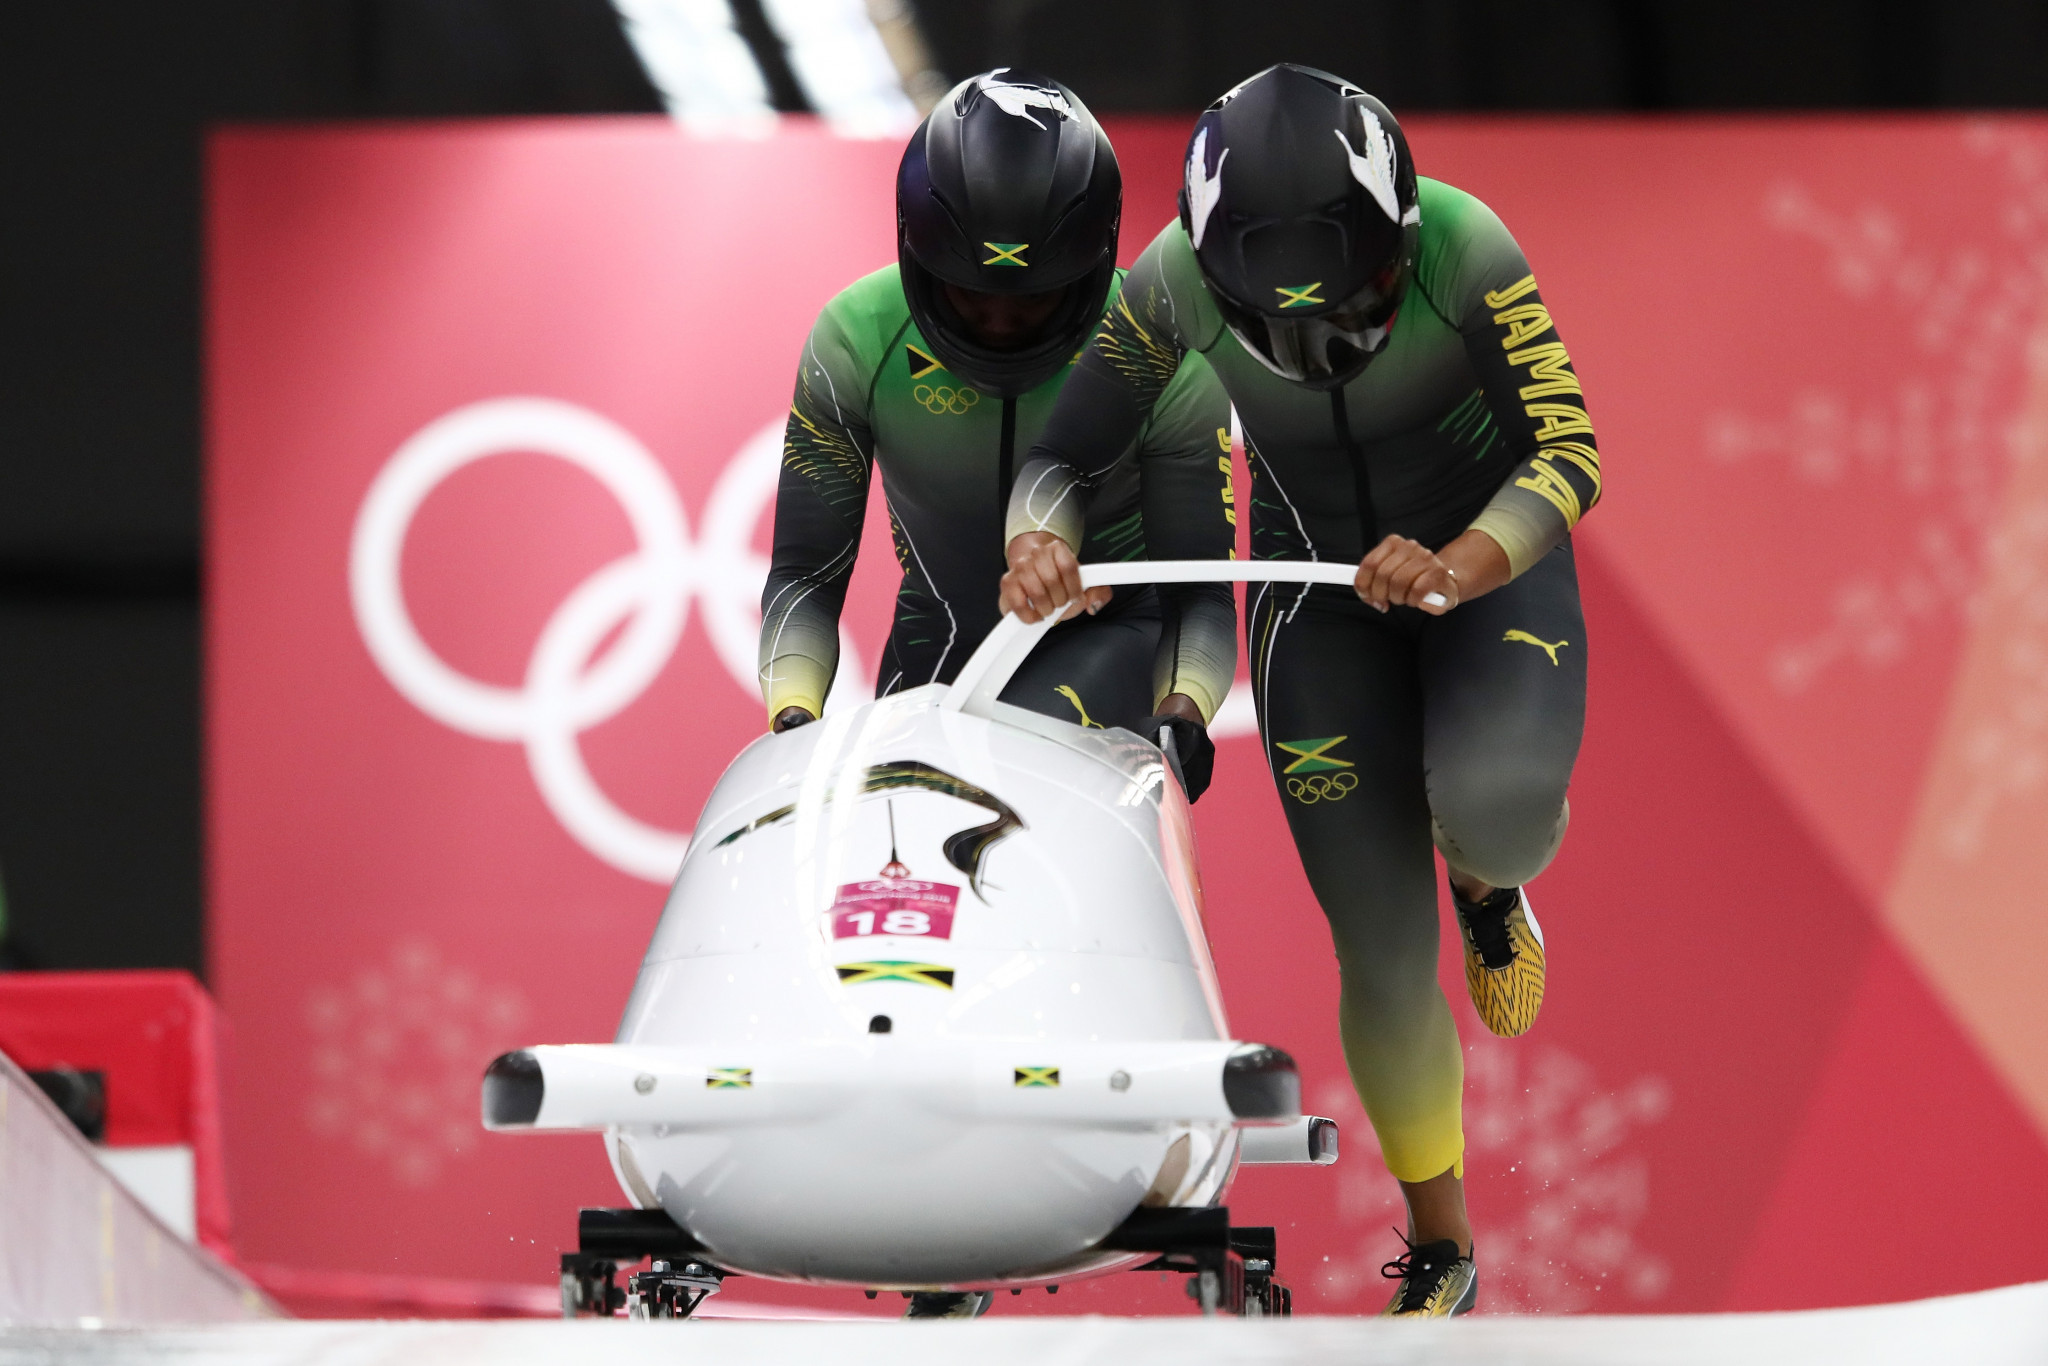 Jamaican women's bobsleigh team member failed drugs test month before Pyeongchang 2018